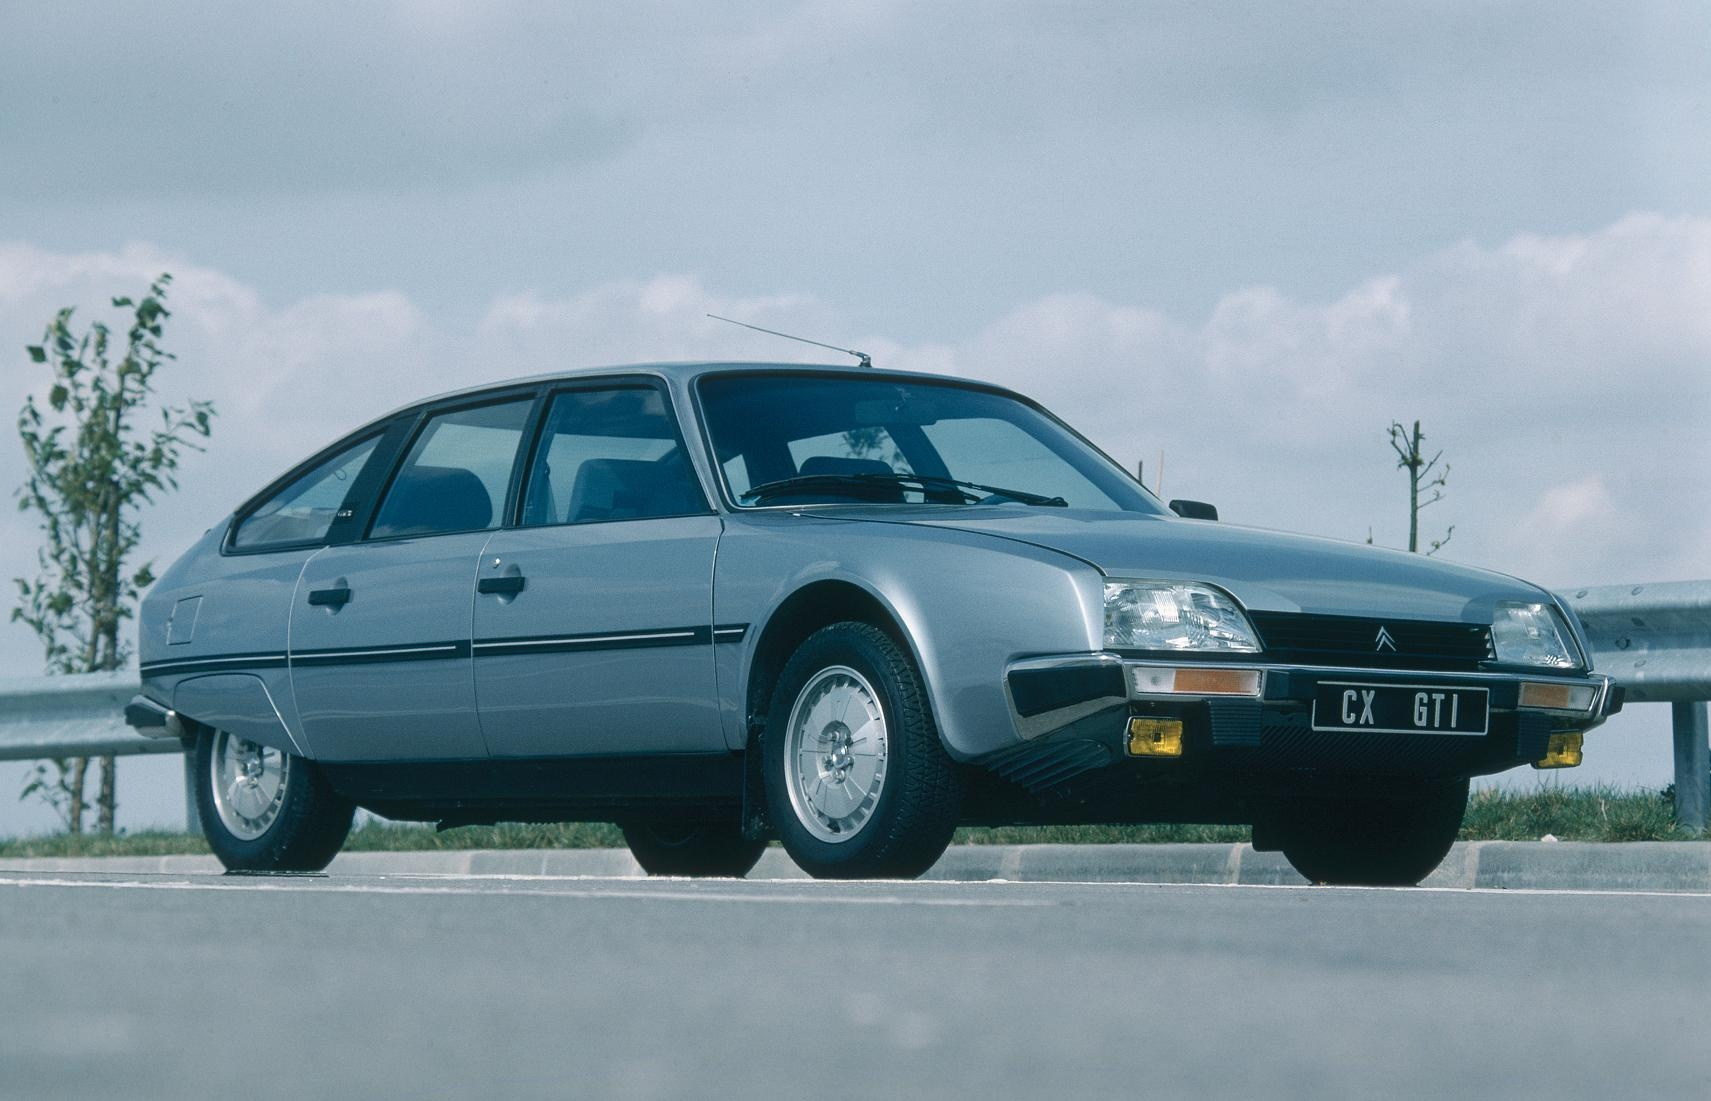 citroen cx images #2